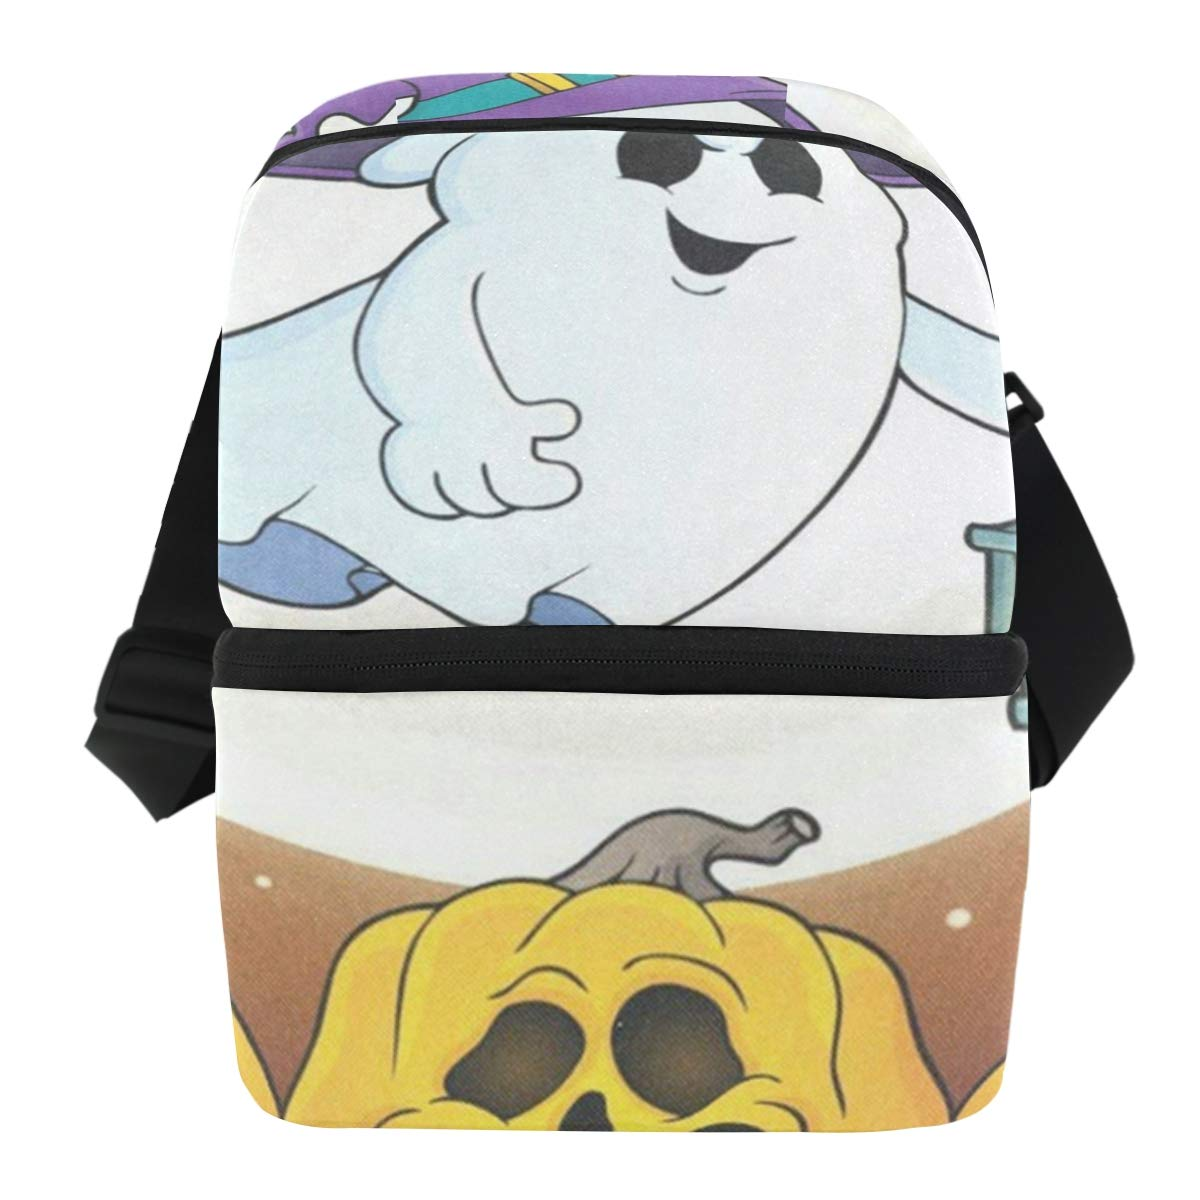 Lunch Bag Ghost With Hat And Lantern Reusable Cooler Bag Womens Leakproof refrigerator Storage Zipper Tote Bags for Wine